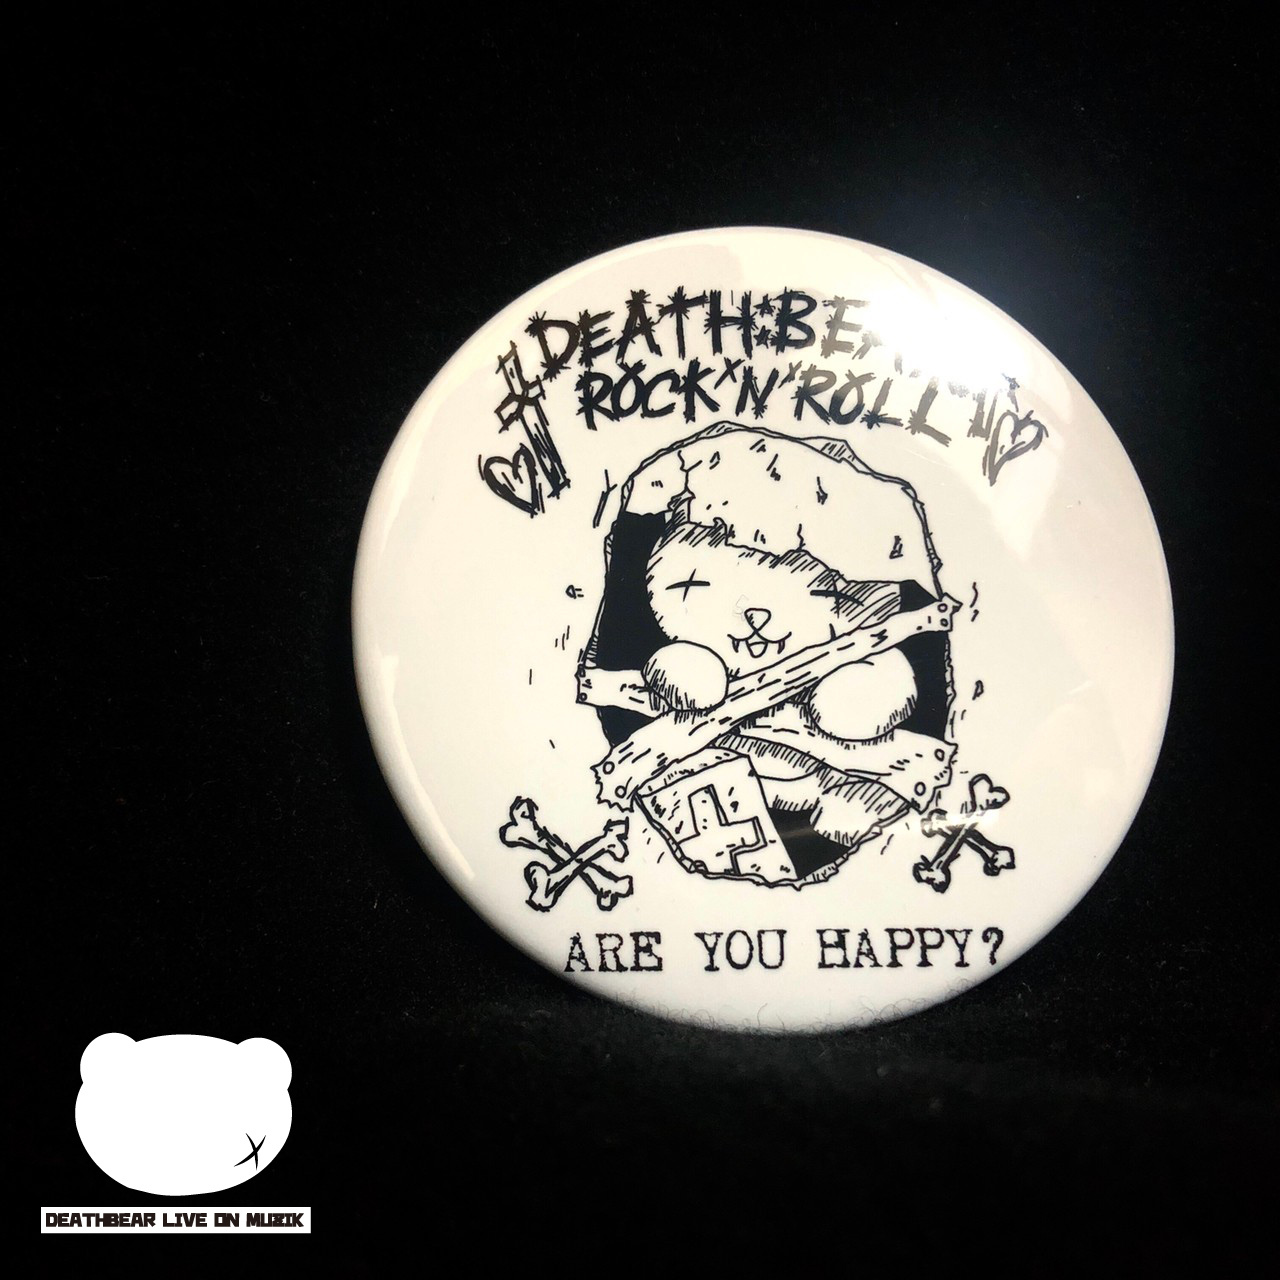 【ARE YOU HAPPY?】BADGE